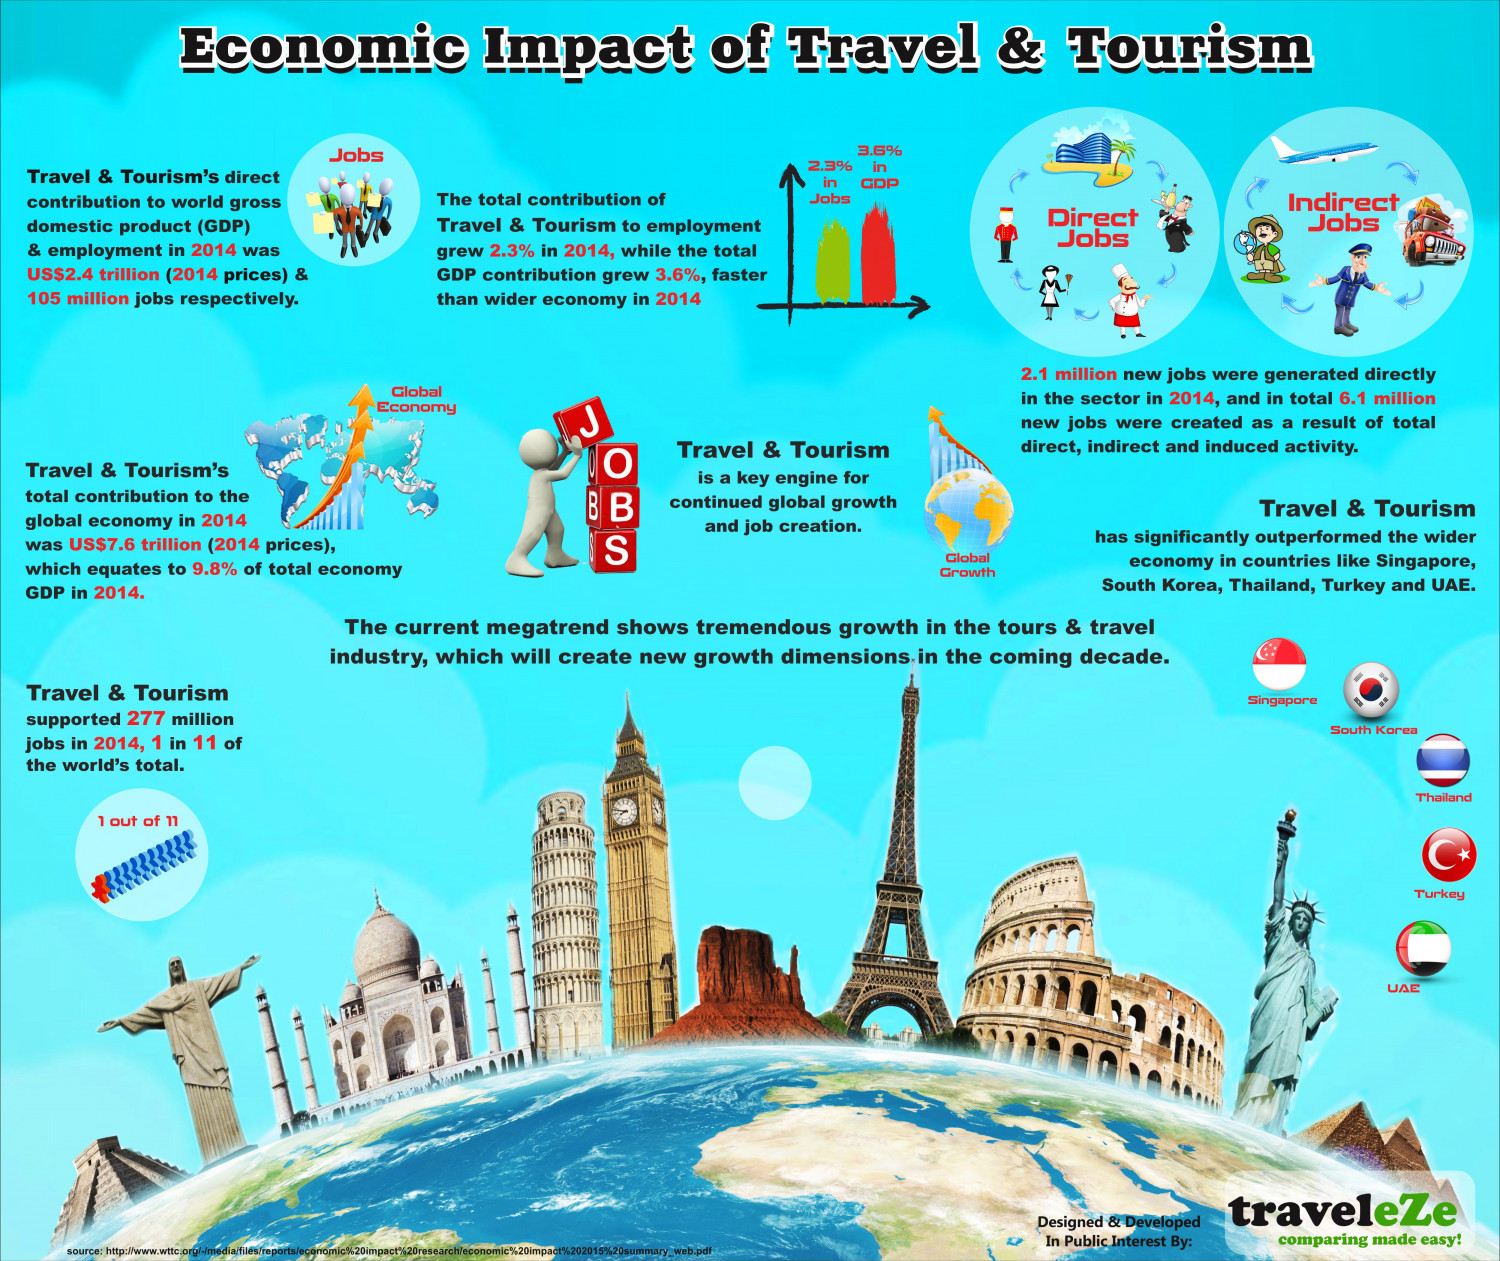 tourism impact in lumbini essay The government of nepal has also declared lumbini tourism year 2012 to promote lumbini tourism in nepal was badly affected, at least temporarily, .